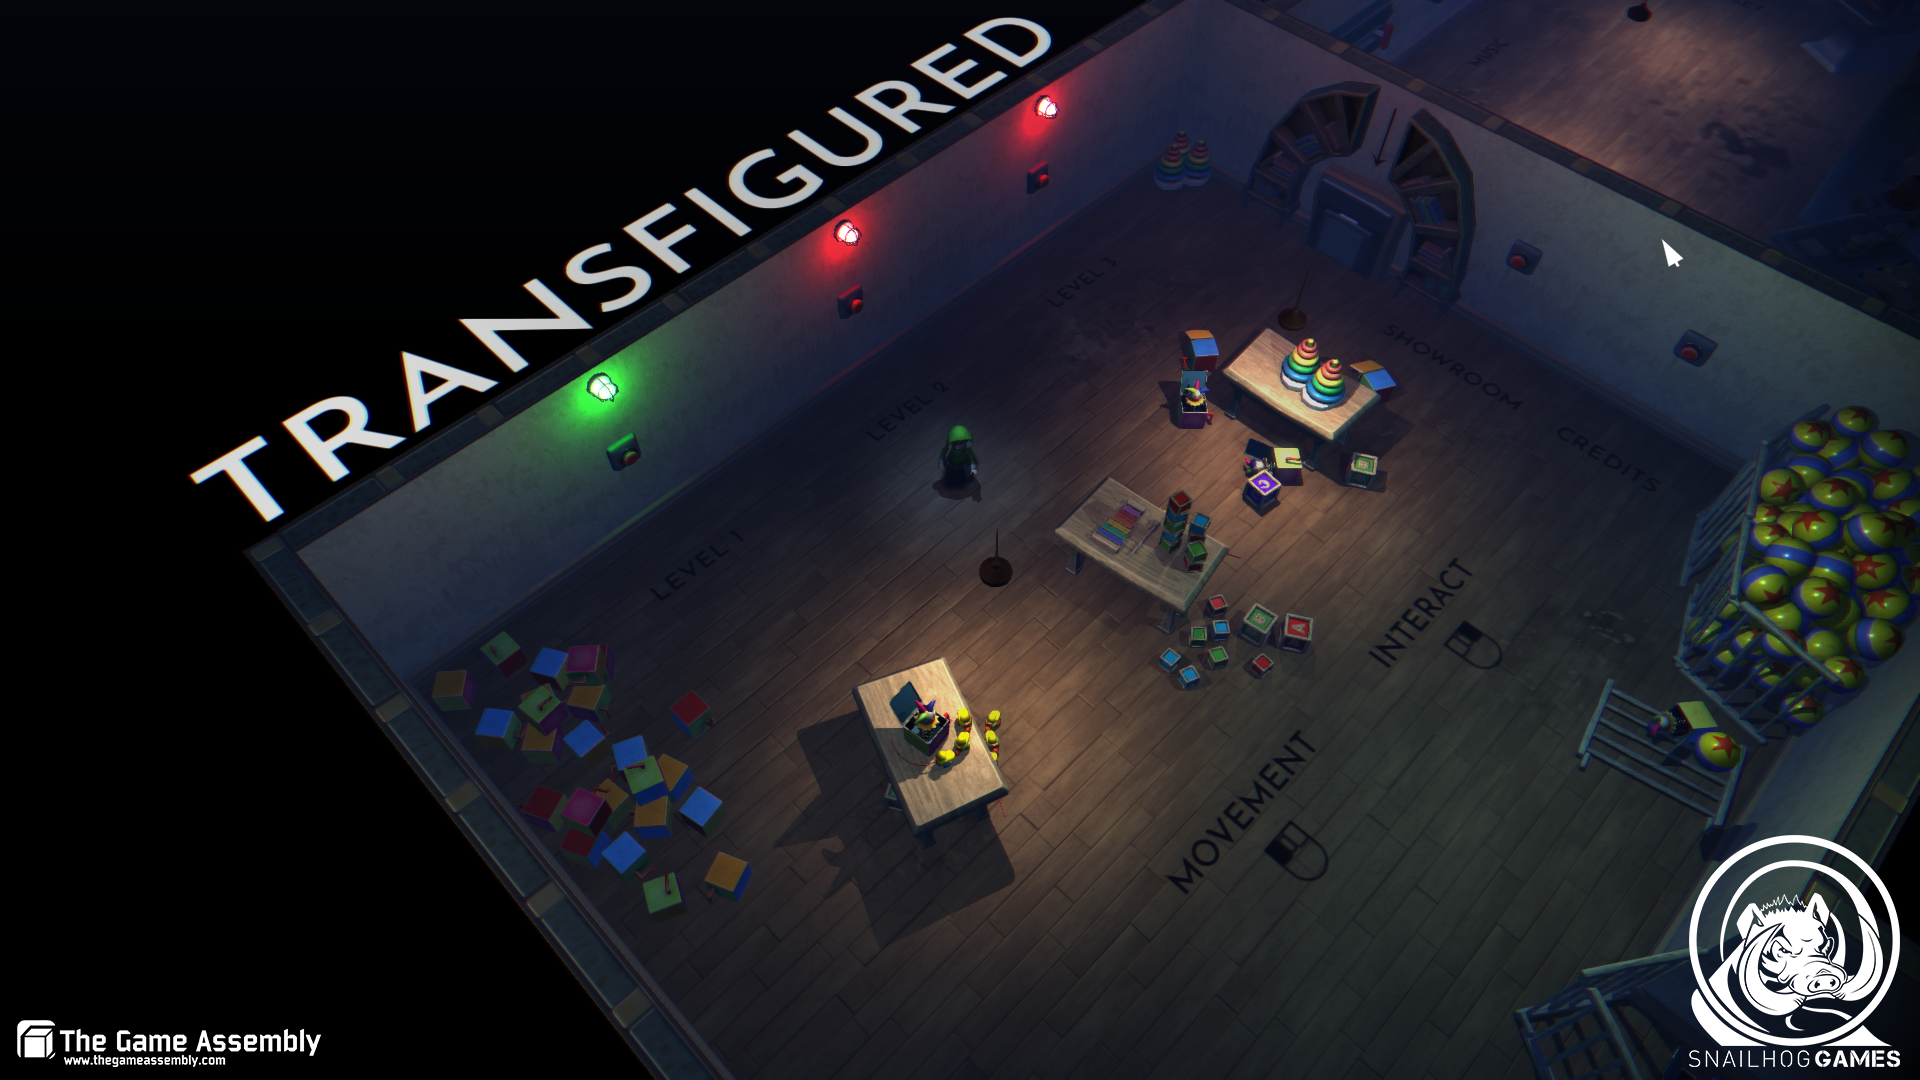 Top down stealth puzzle game